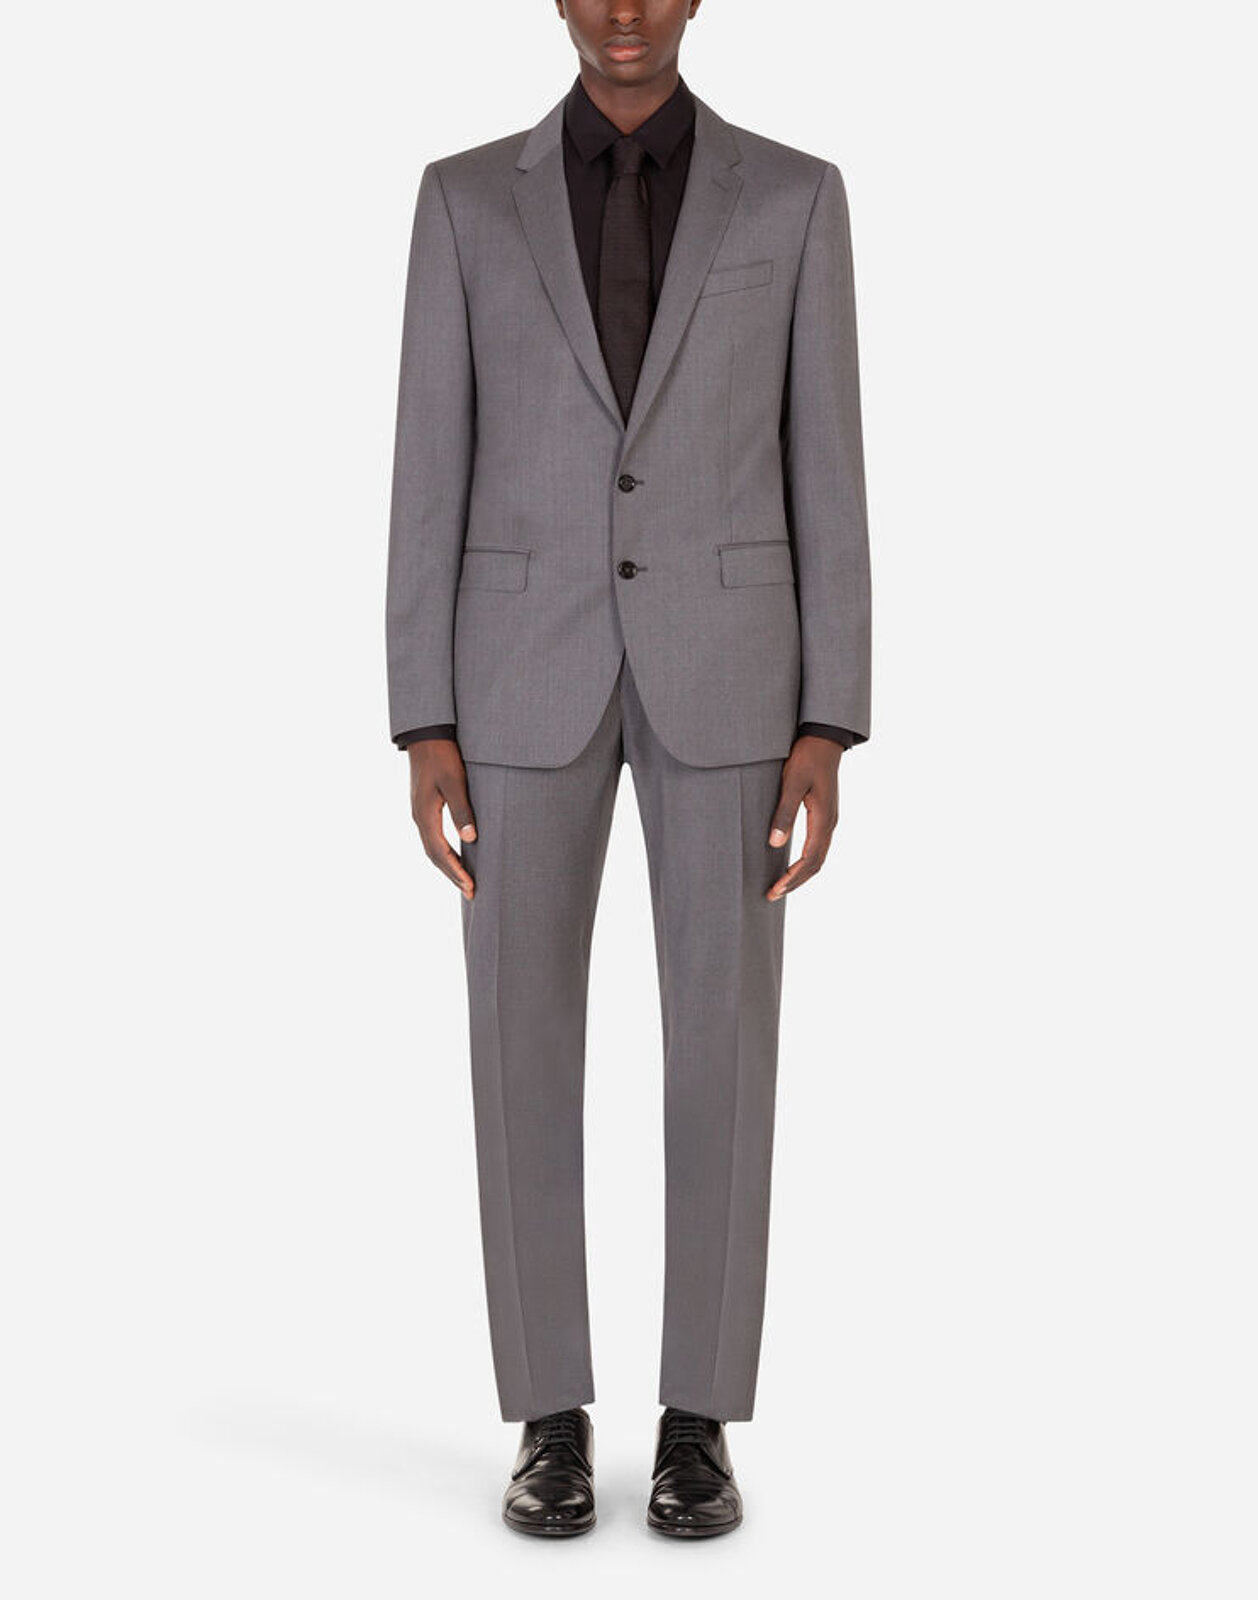 Stretch Pinstripe Wool Martini Suit - Dolce & Gabbana